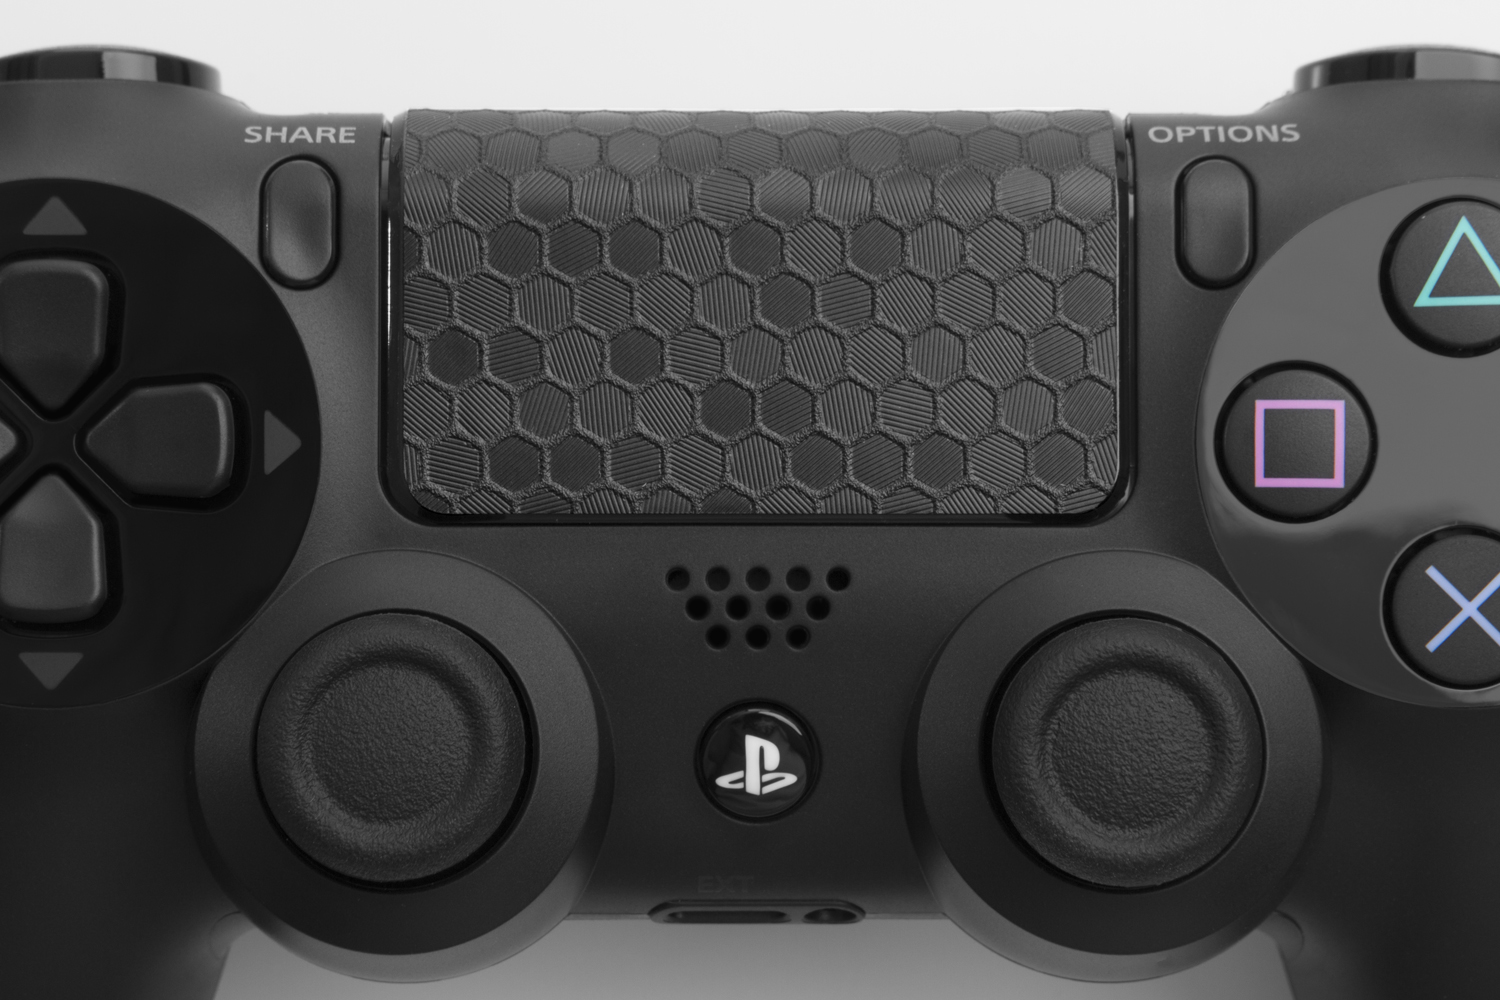 While our numbers have shown TouchProtect to be gaining traction in the Steam community, we did not leave out our PS4 crew for the release of HEX. All colors are also available for PS4 controllers.